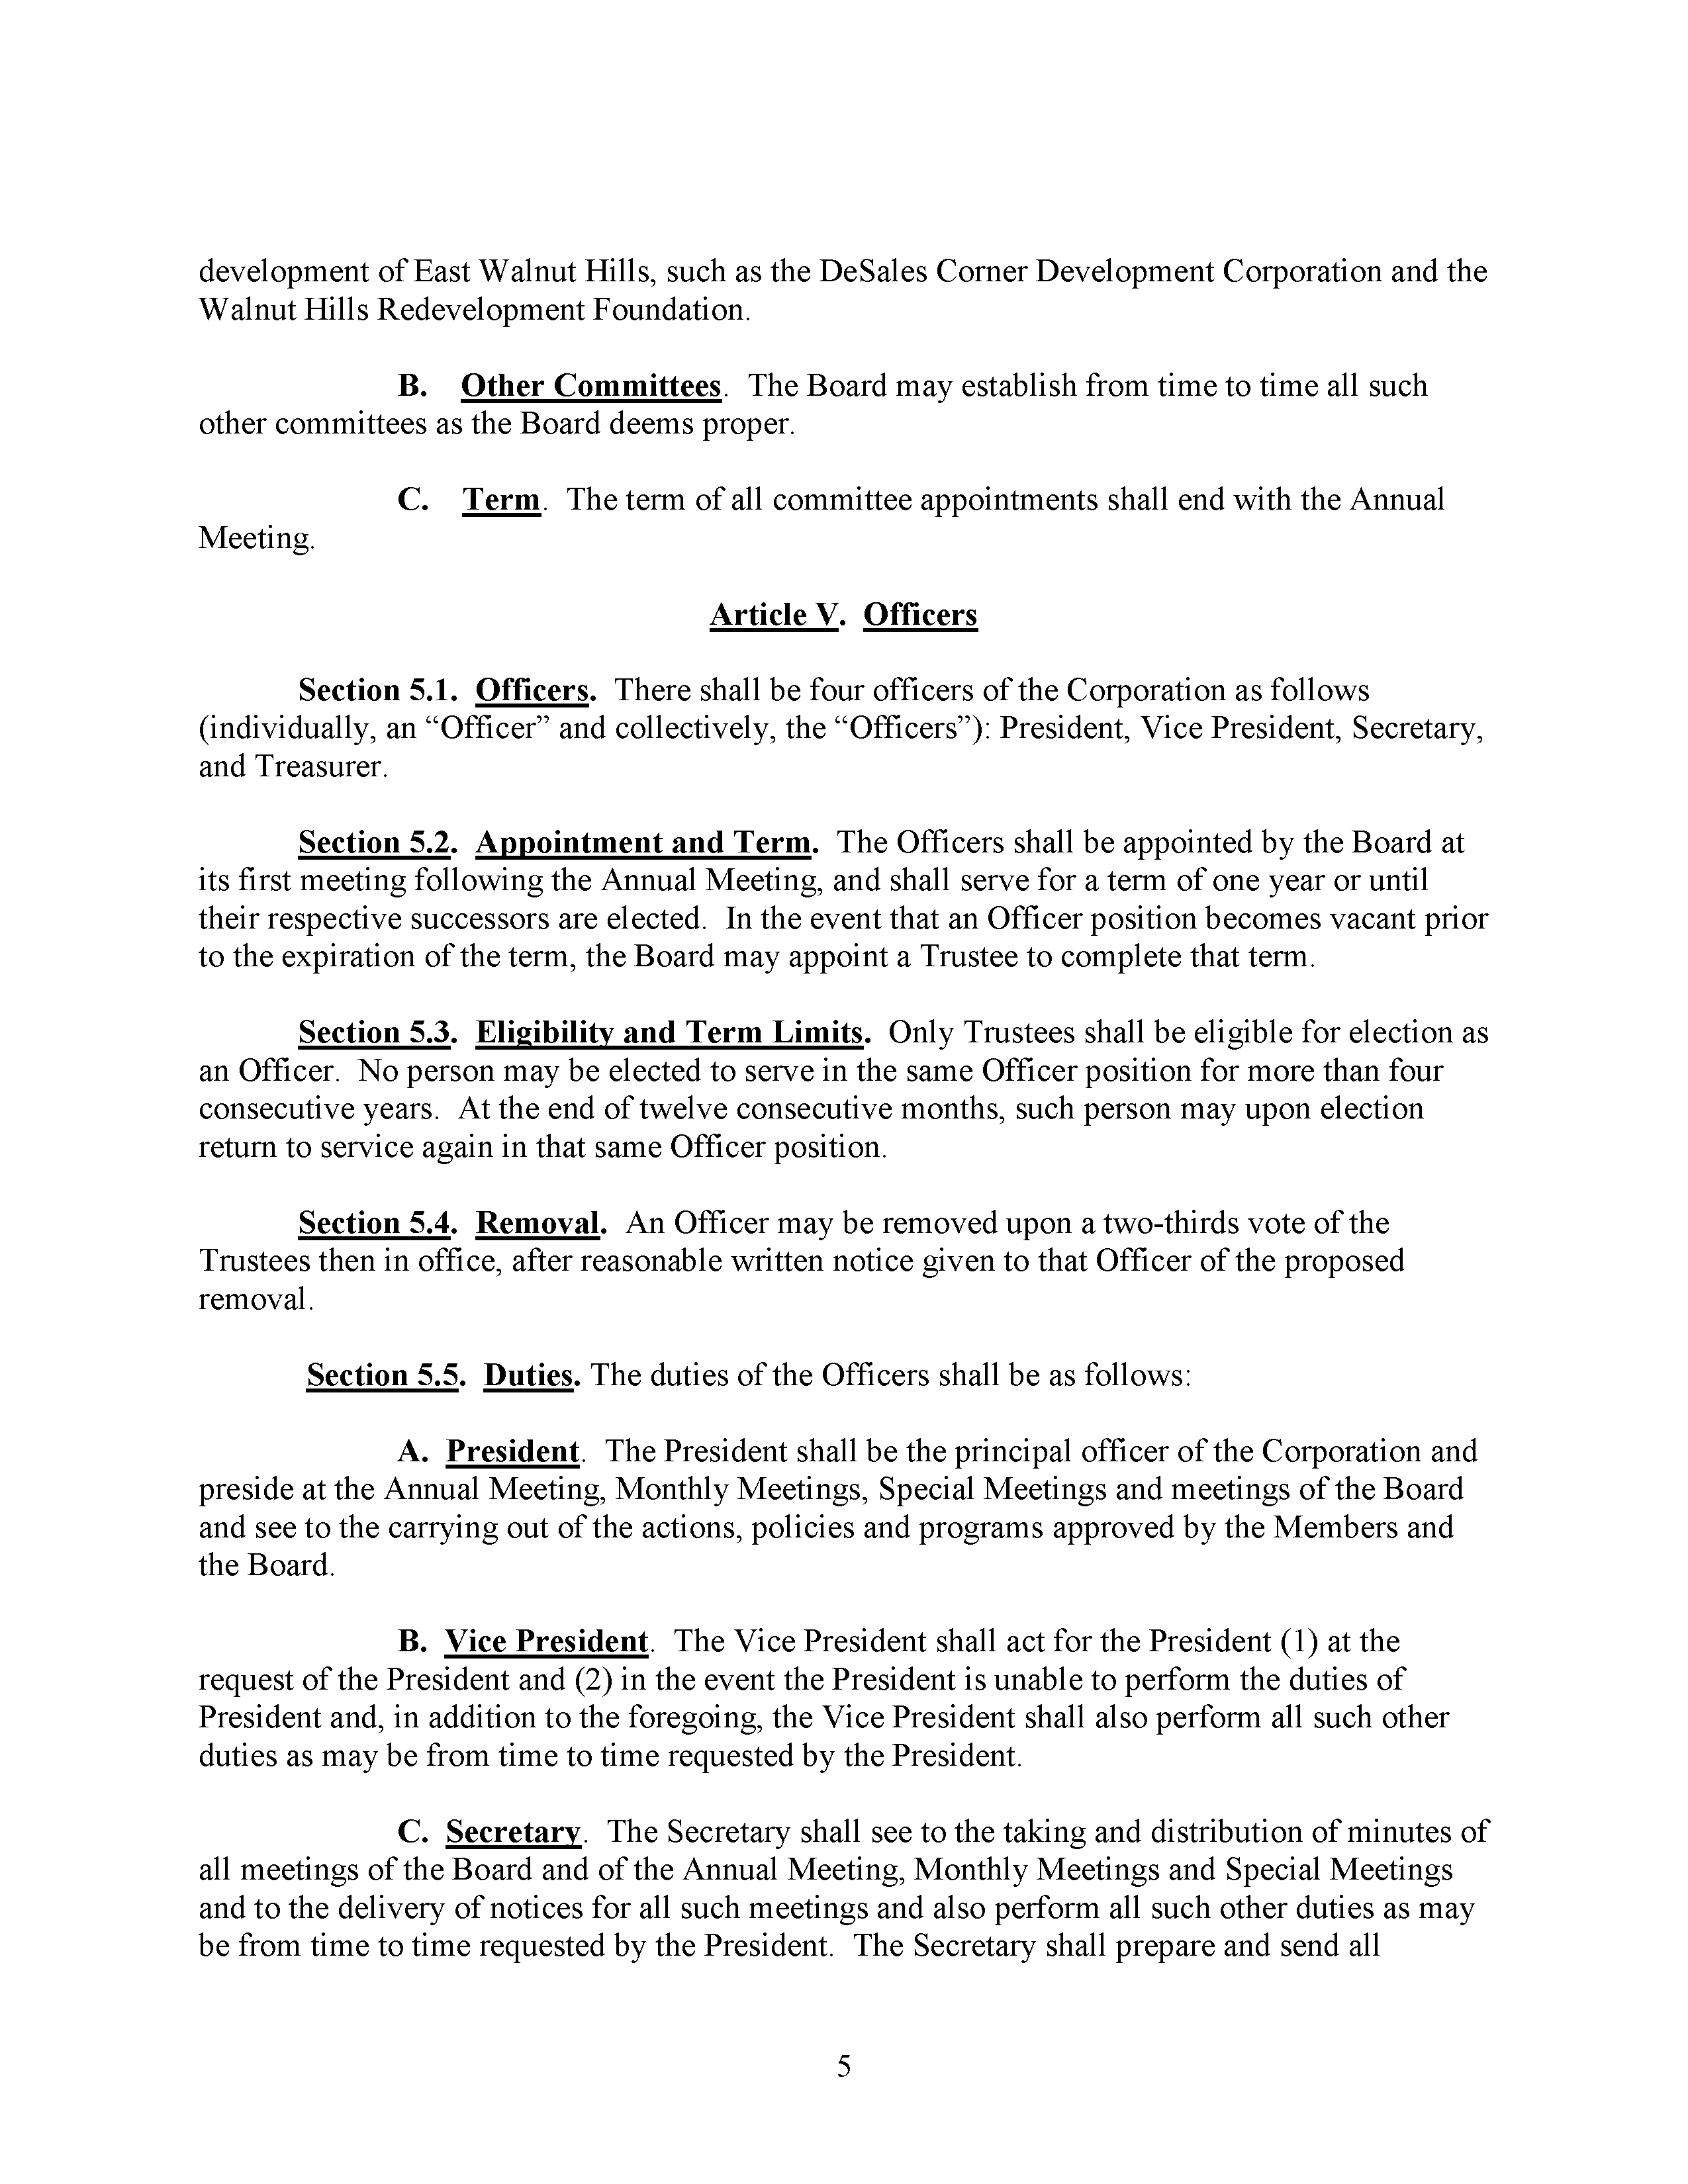 Code of Regulations, page 5